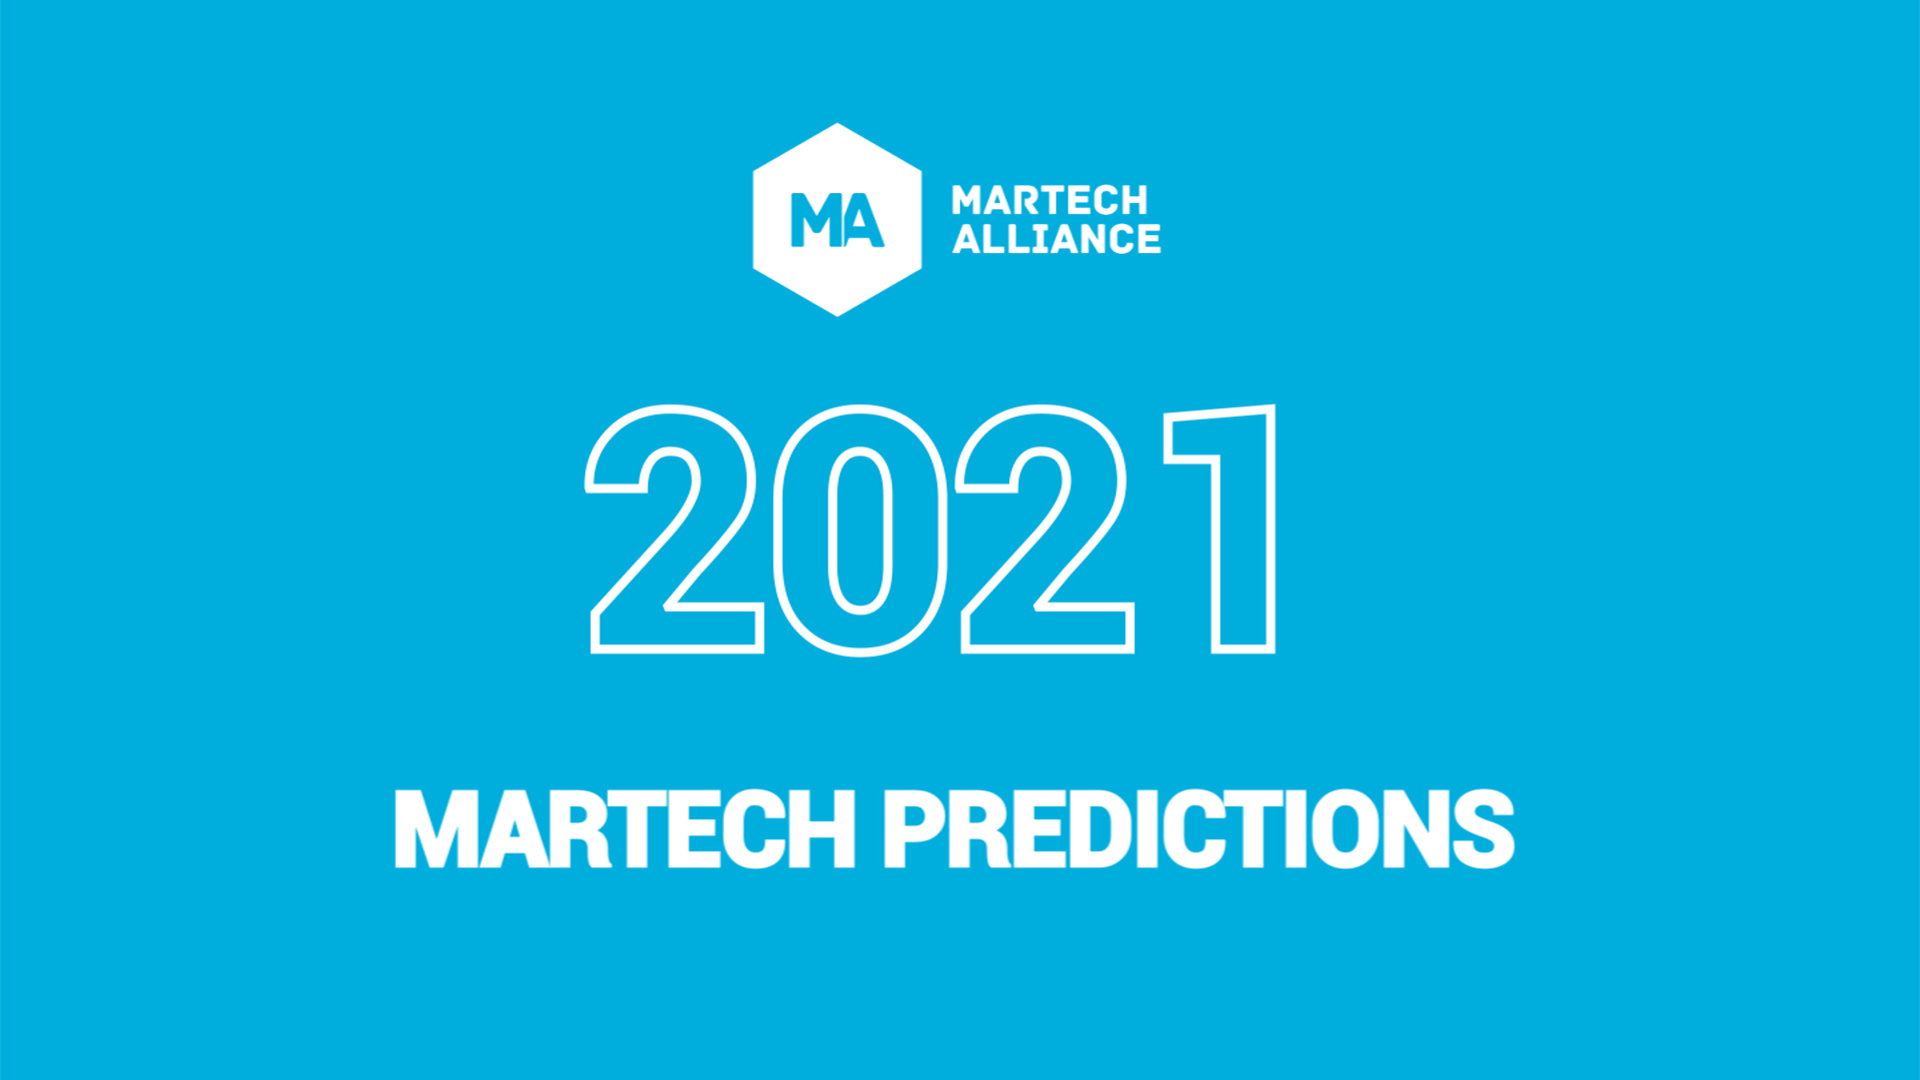 WebSesh: 2021 Martech Predictions Write Up